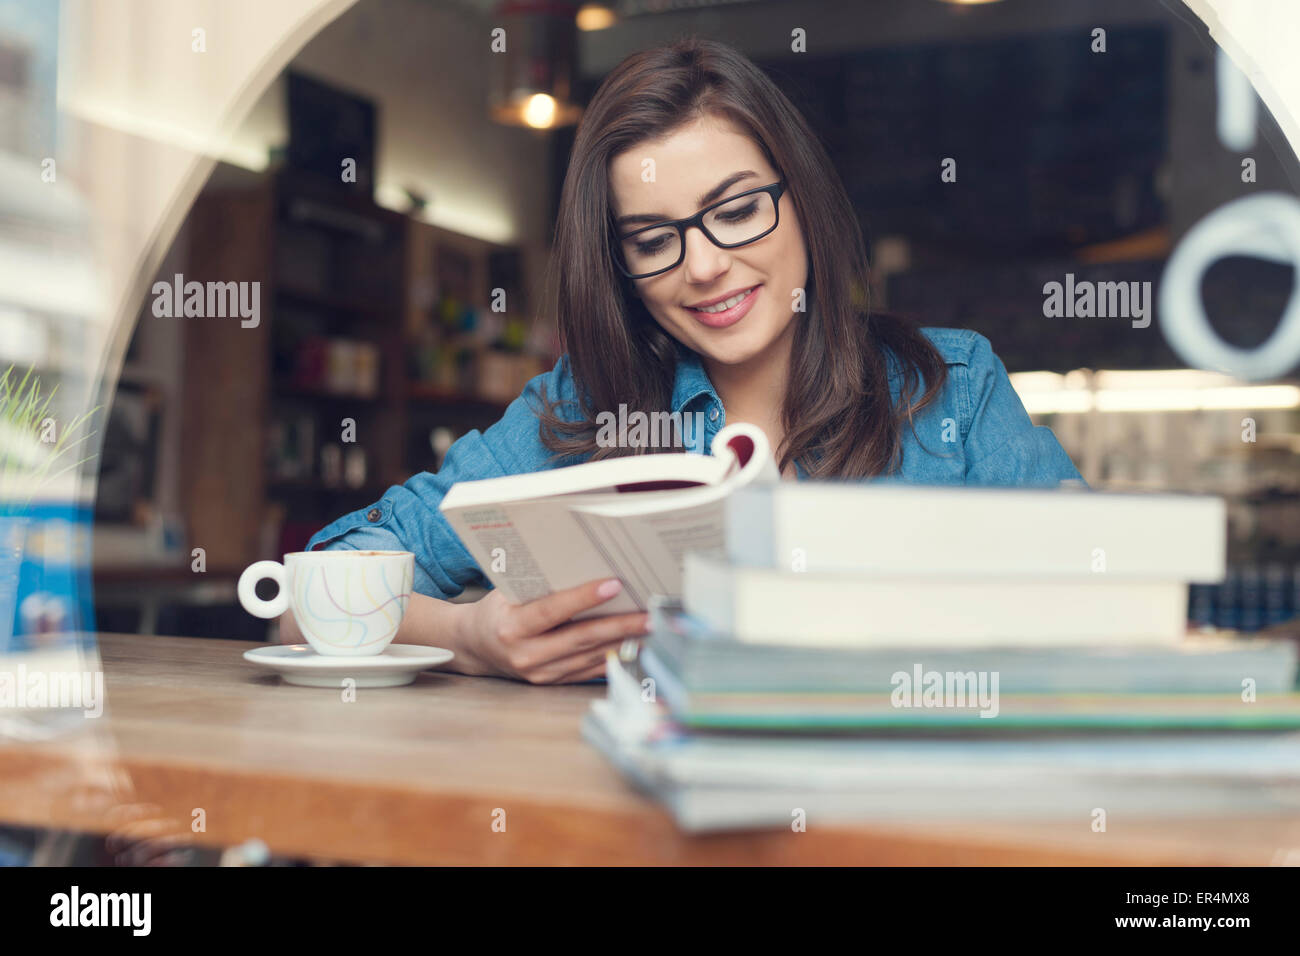 Hipster woman studying at cafe. Krakow, Poland - Stock Image